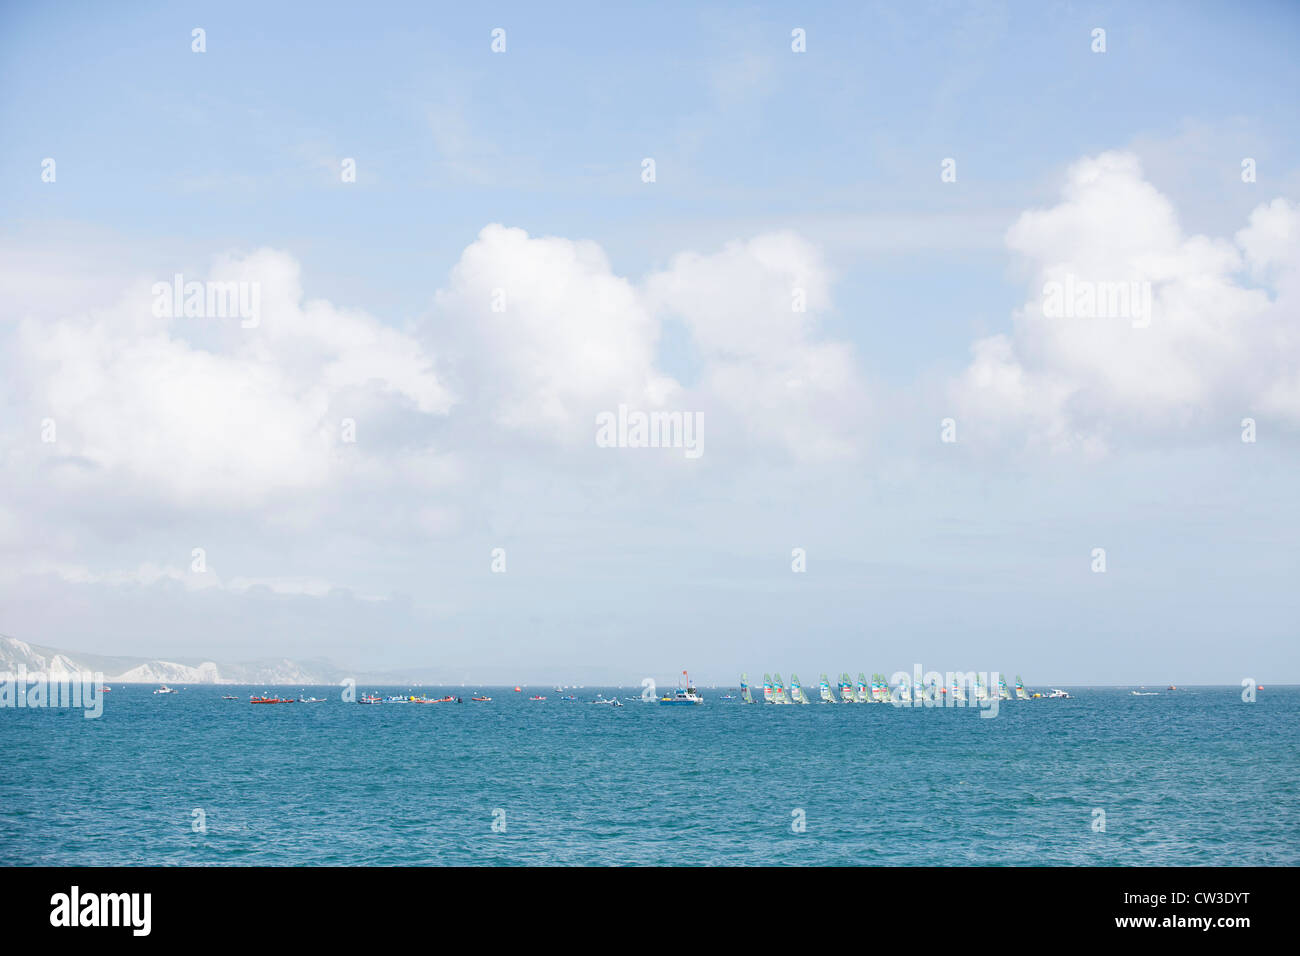 49er dinghies racing during the Olympic sailing regatta in Weymouth and Portland - Stock Image